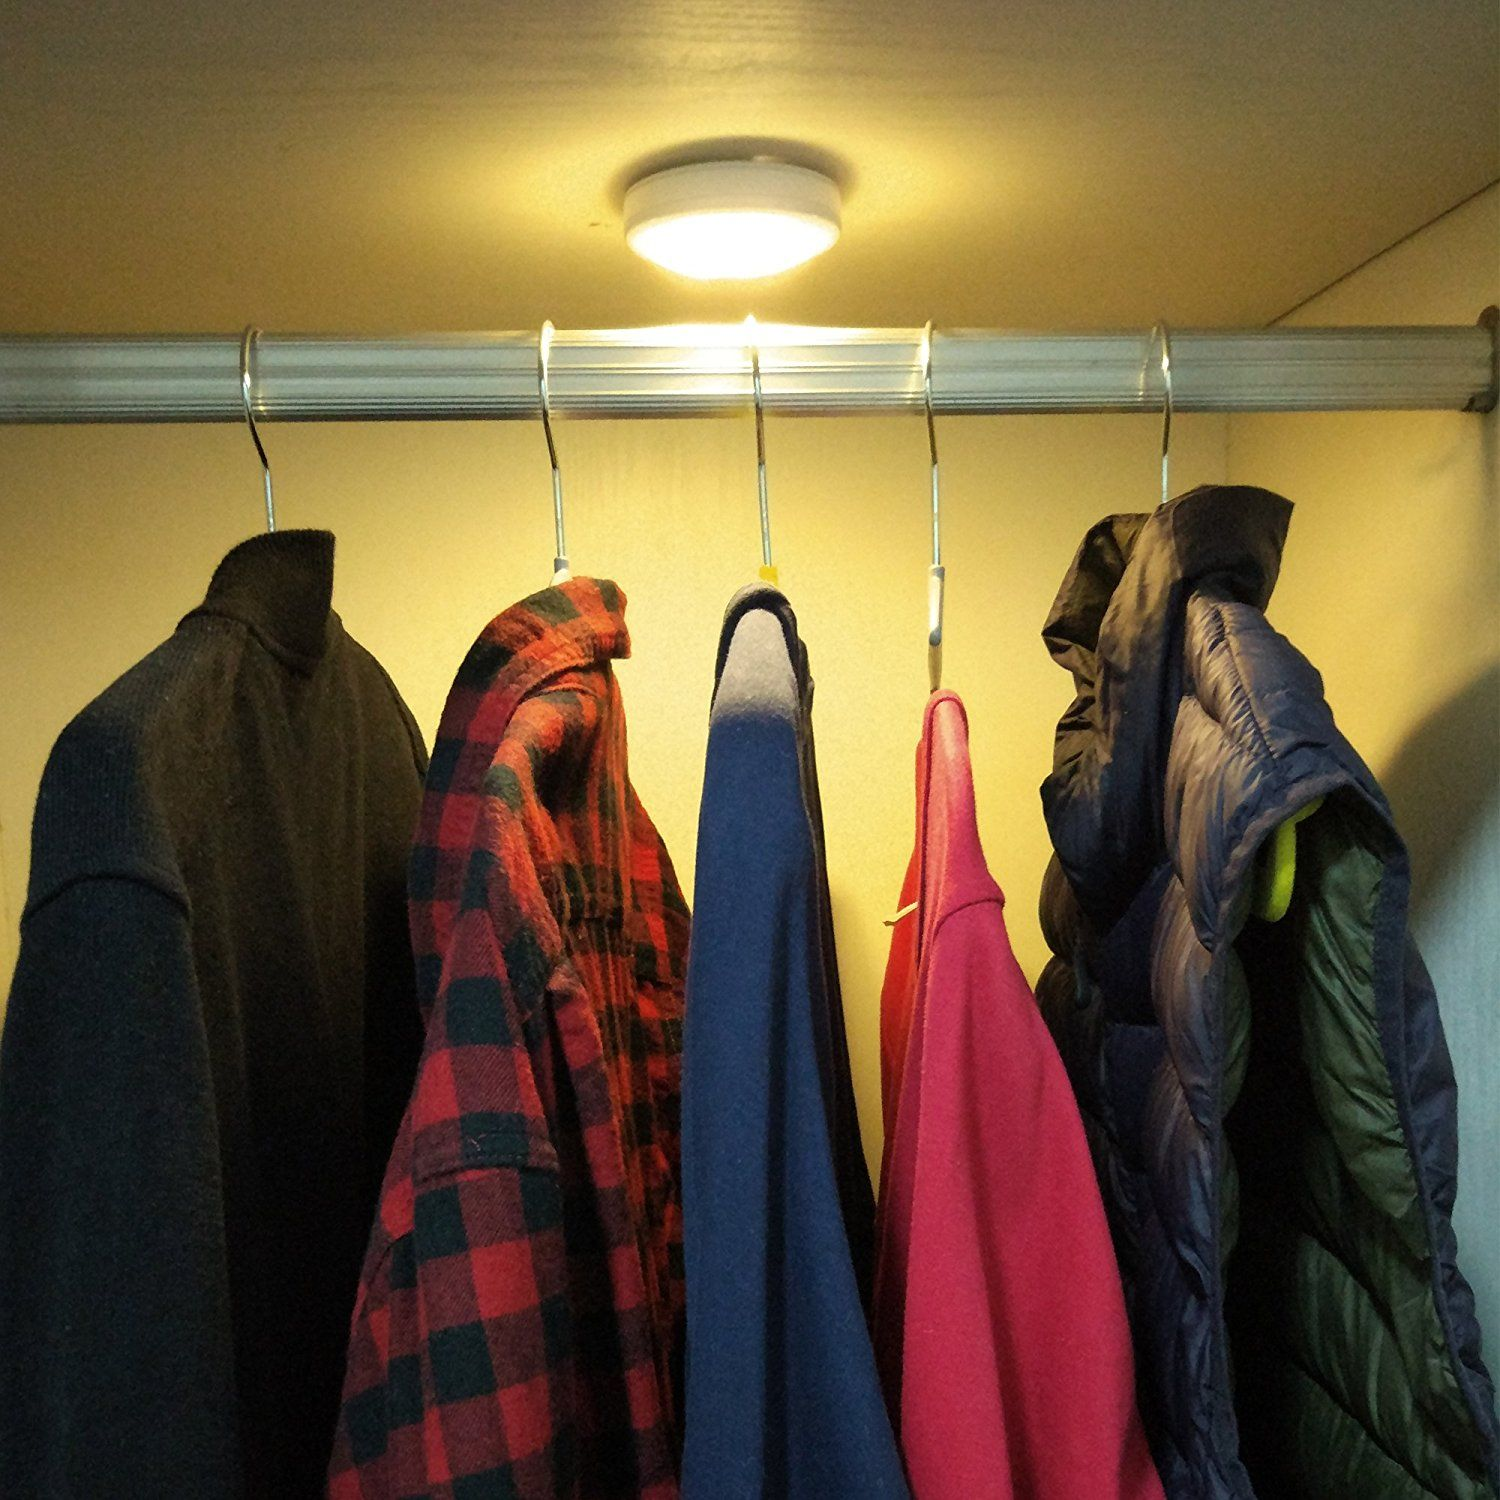 Sycees Touch Activated Led Puck Lights, Closet Light, Under Cabinet